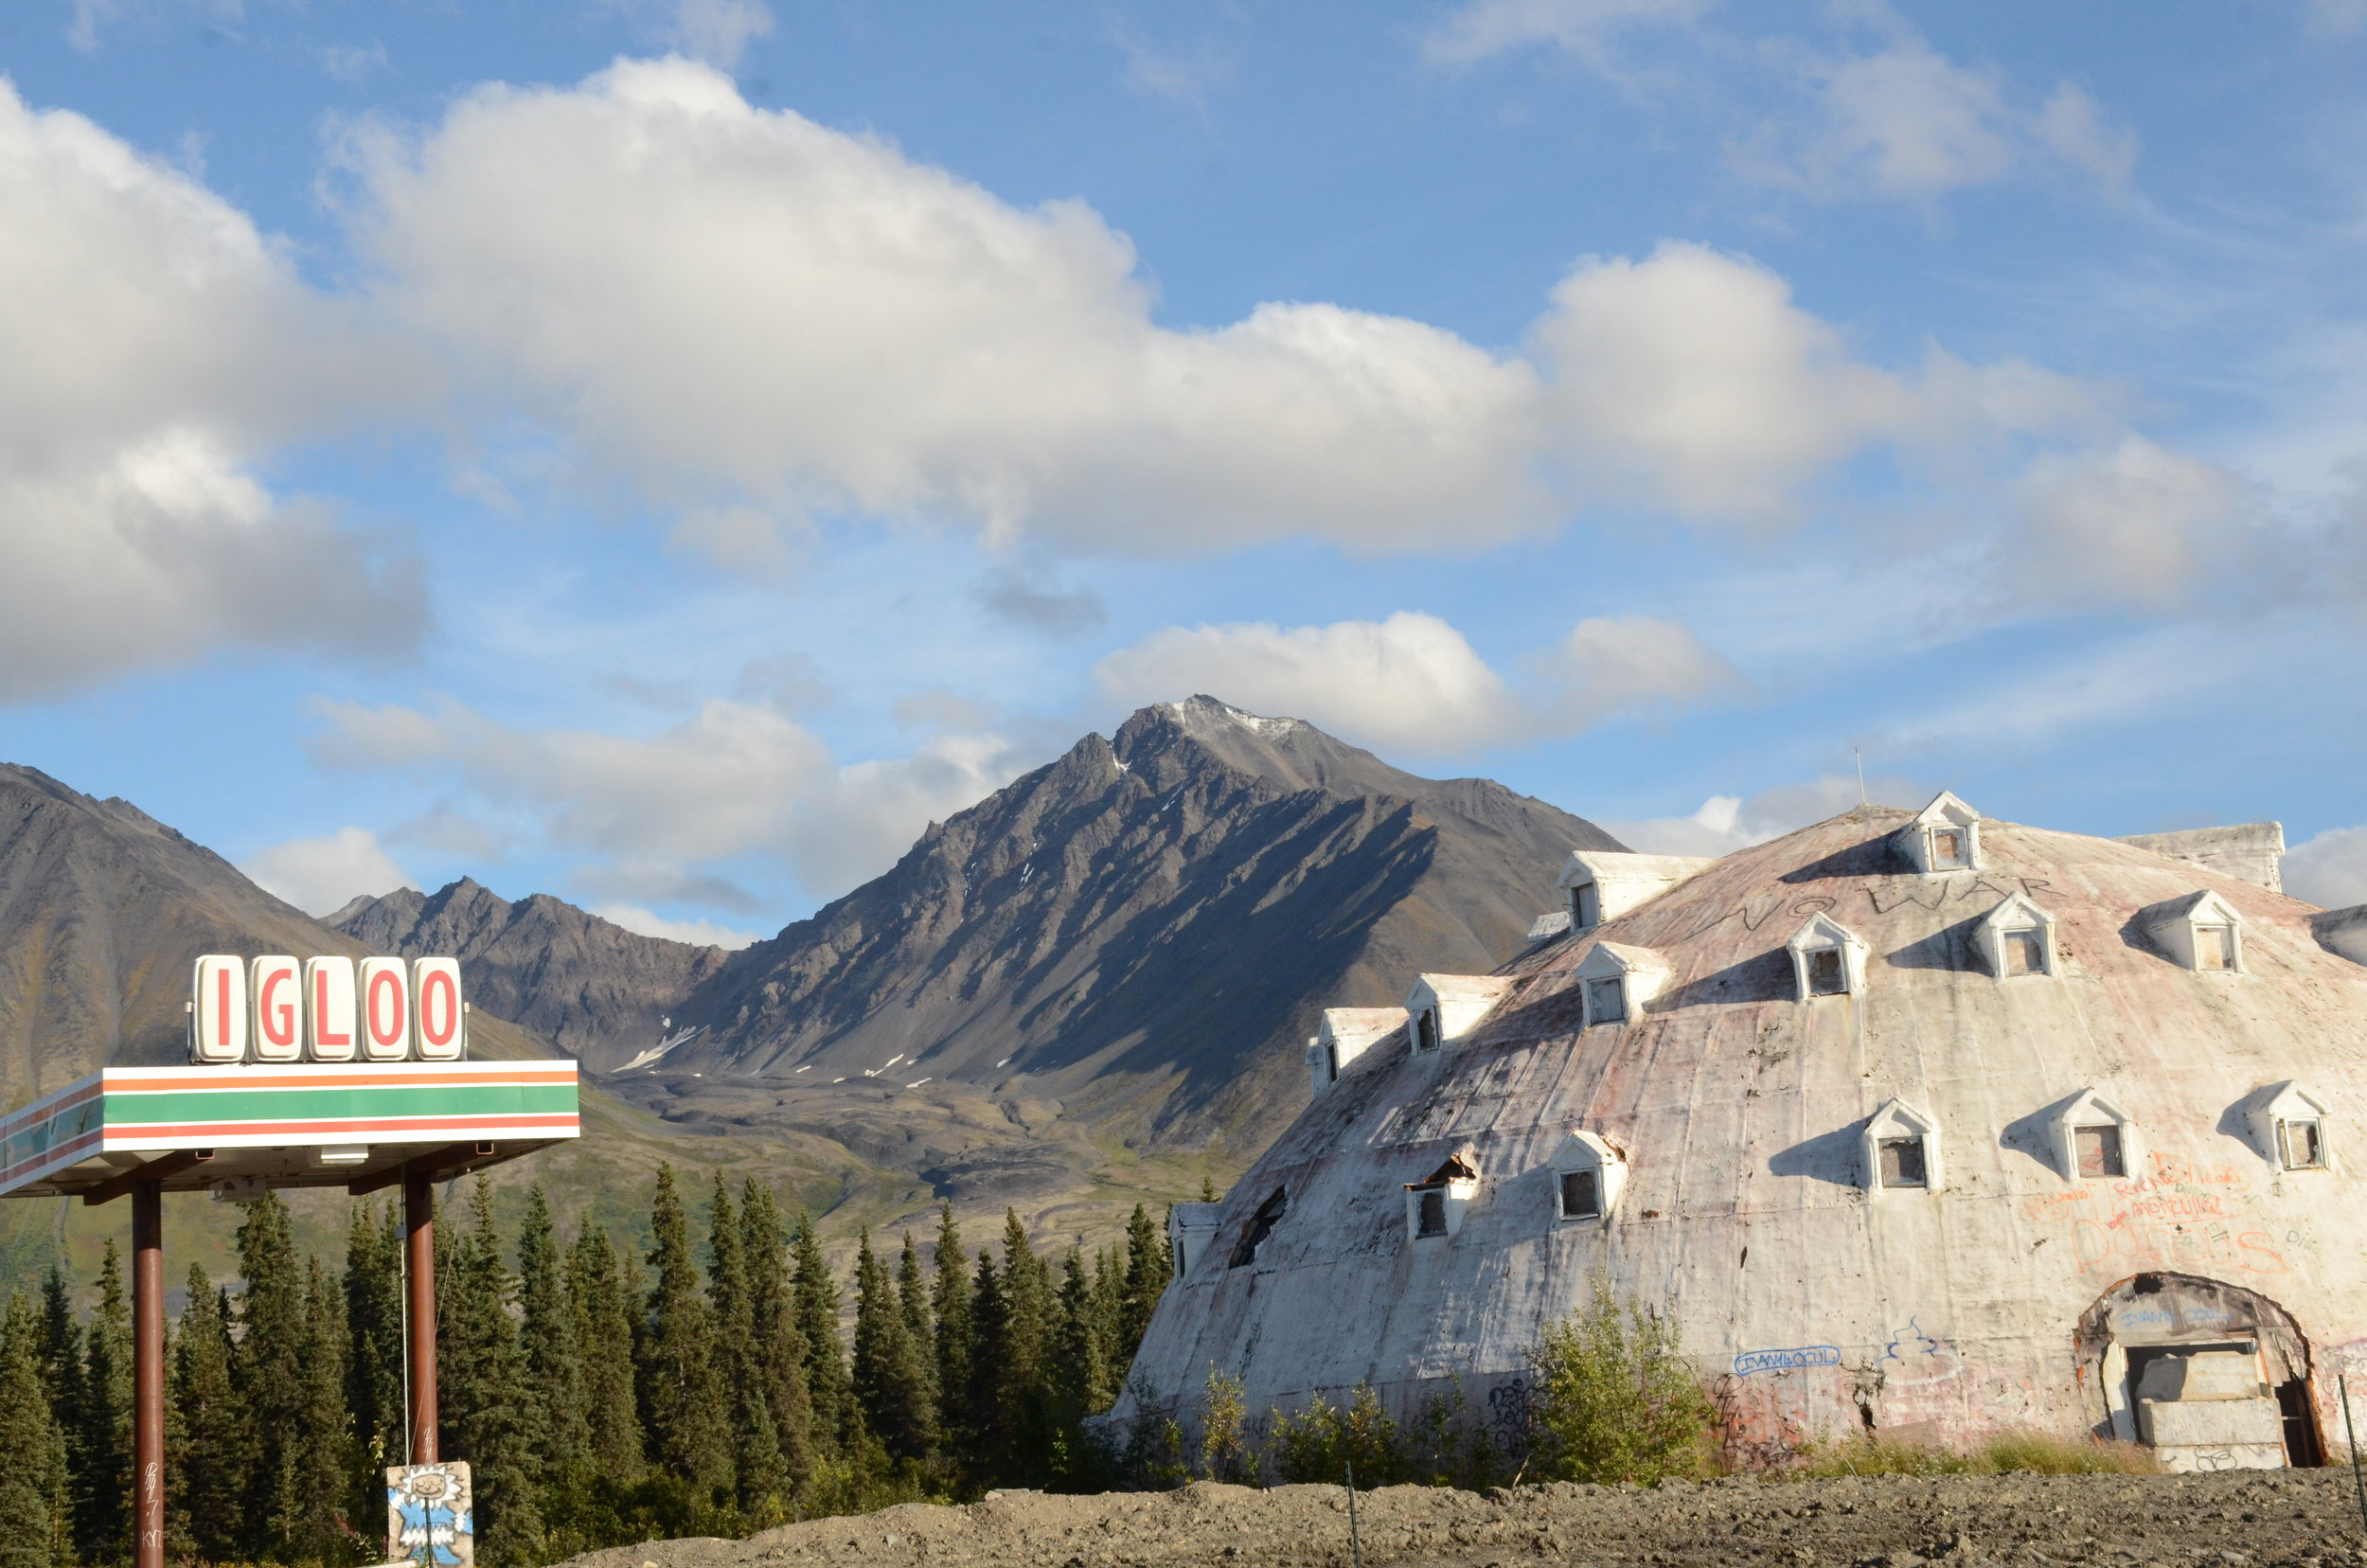 A former attraction on the road to Denali.